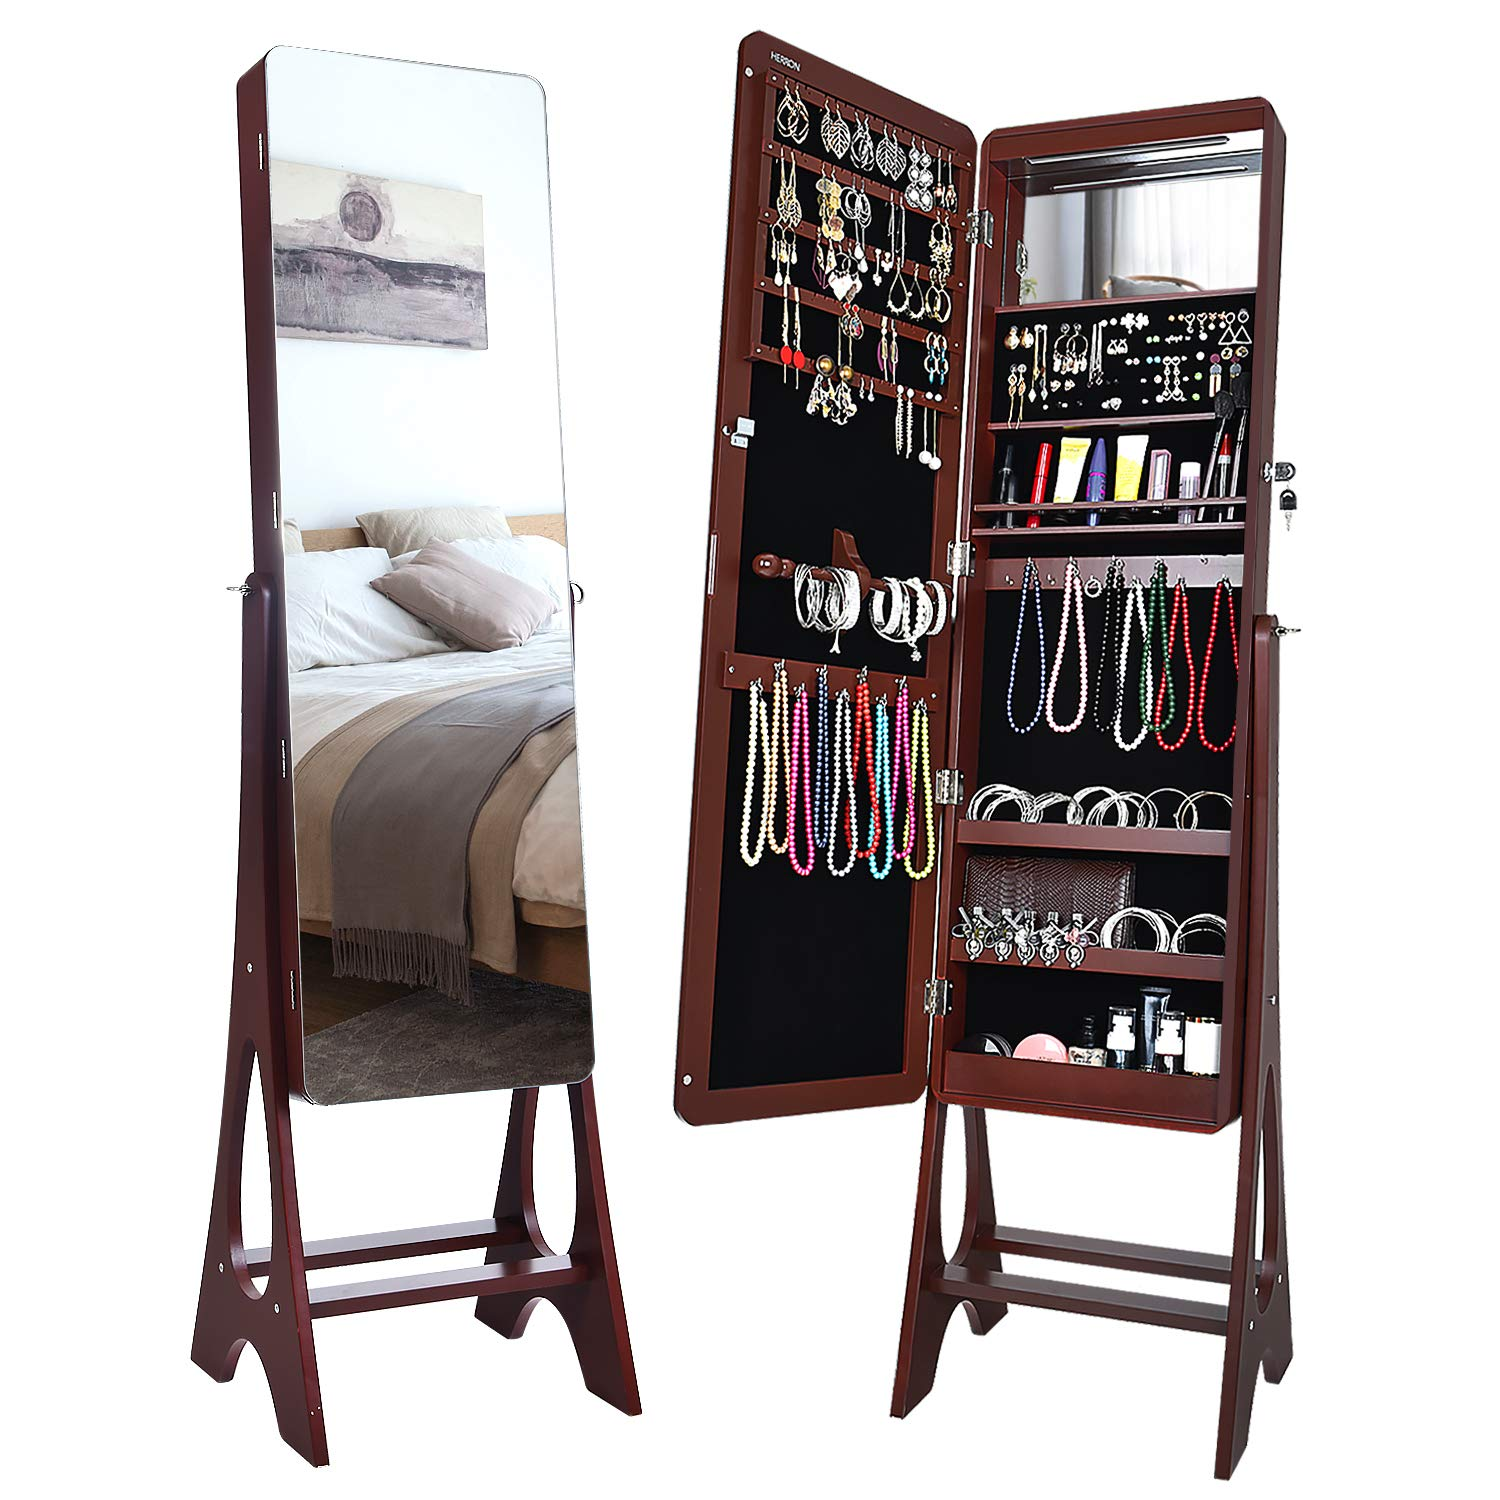 HERRON 14 LEDs Jewelry Cabinet, Lockable Free Standing Jewelry Armoire with Full Length Mirror, Large Capacity Jewelry Organizer for Women to Store Jewelry,Brown